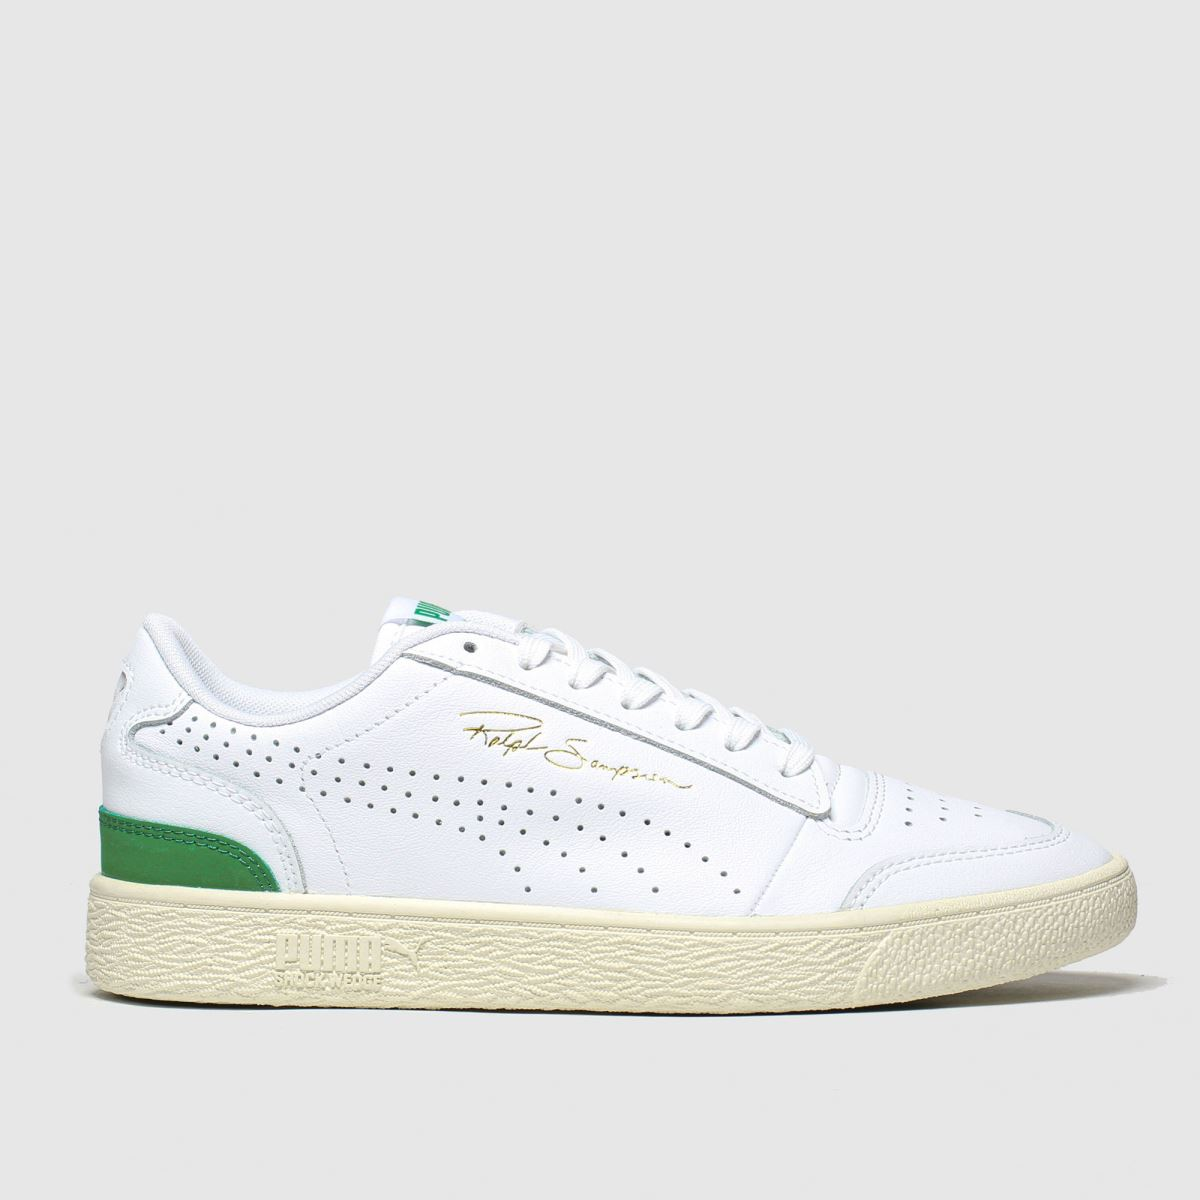 Puma White & Green Ralph Sampson Lo Perf Trainers